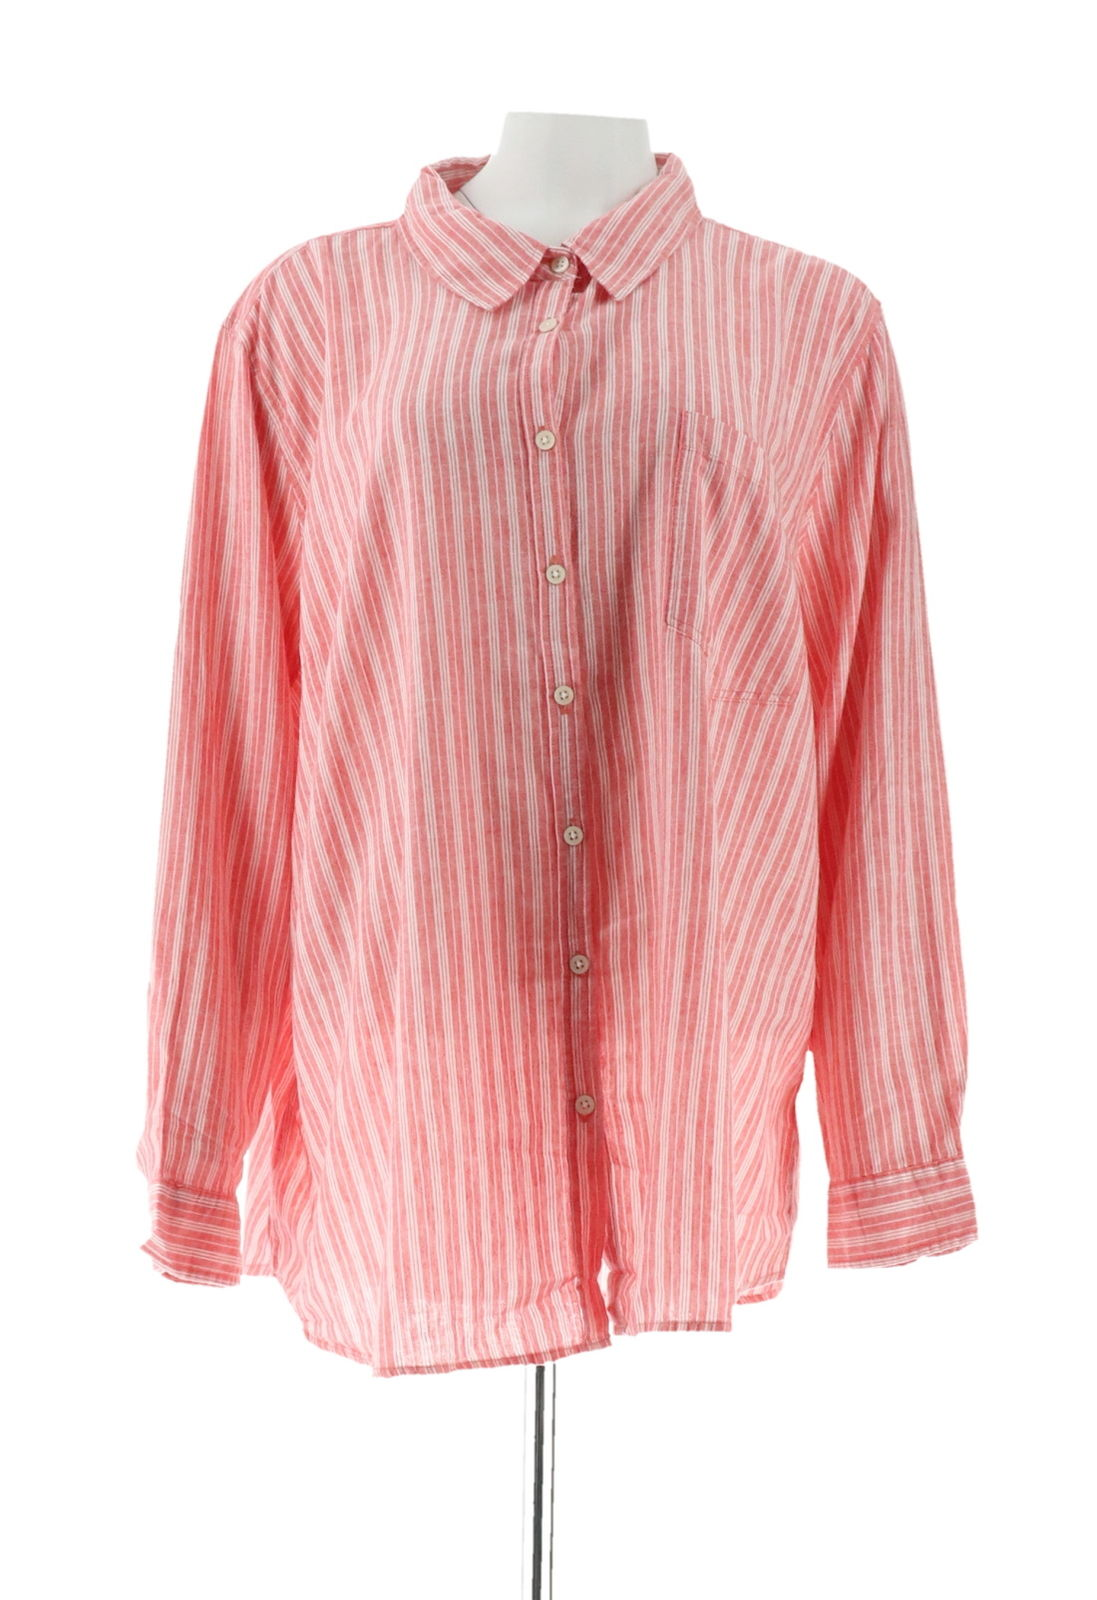 Denim & Co Linen Blend Button Long Slv Shirt A307958